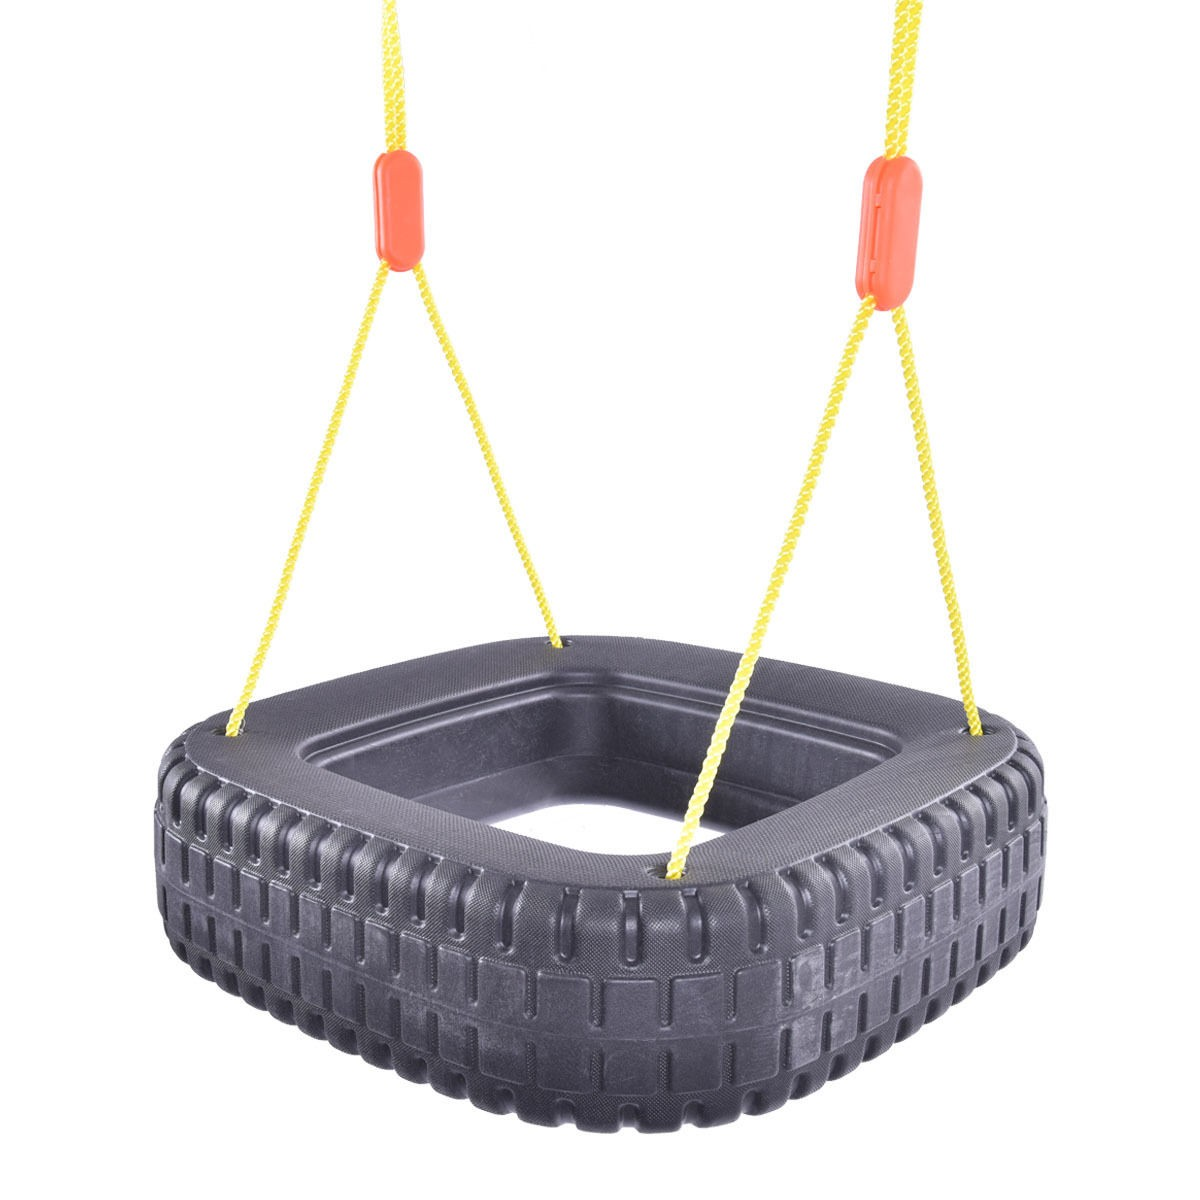 Classic Tire Swing 2 Kids Children Outdoor Play Durable Backyard